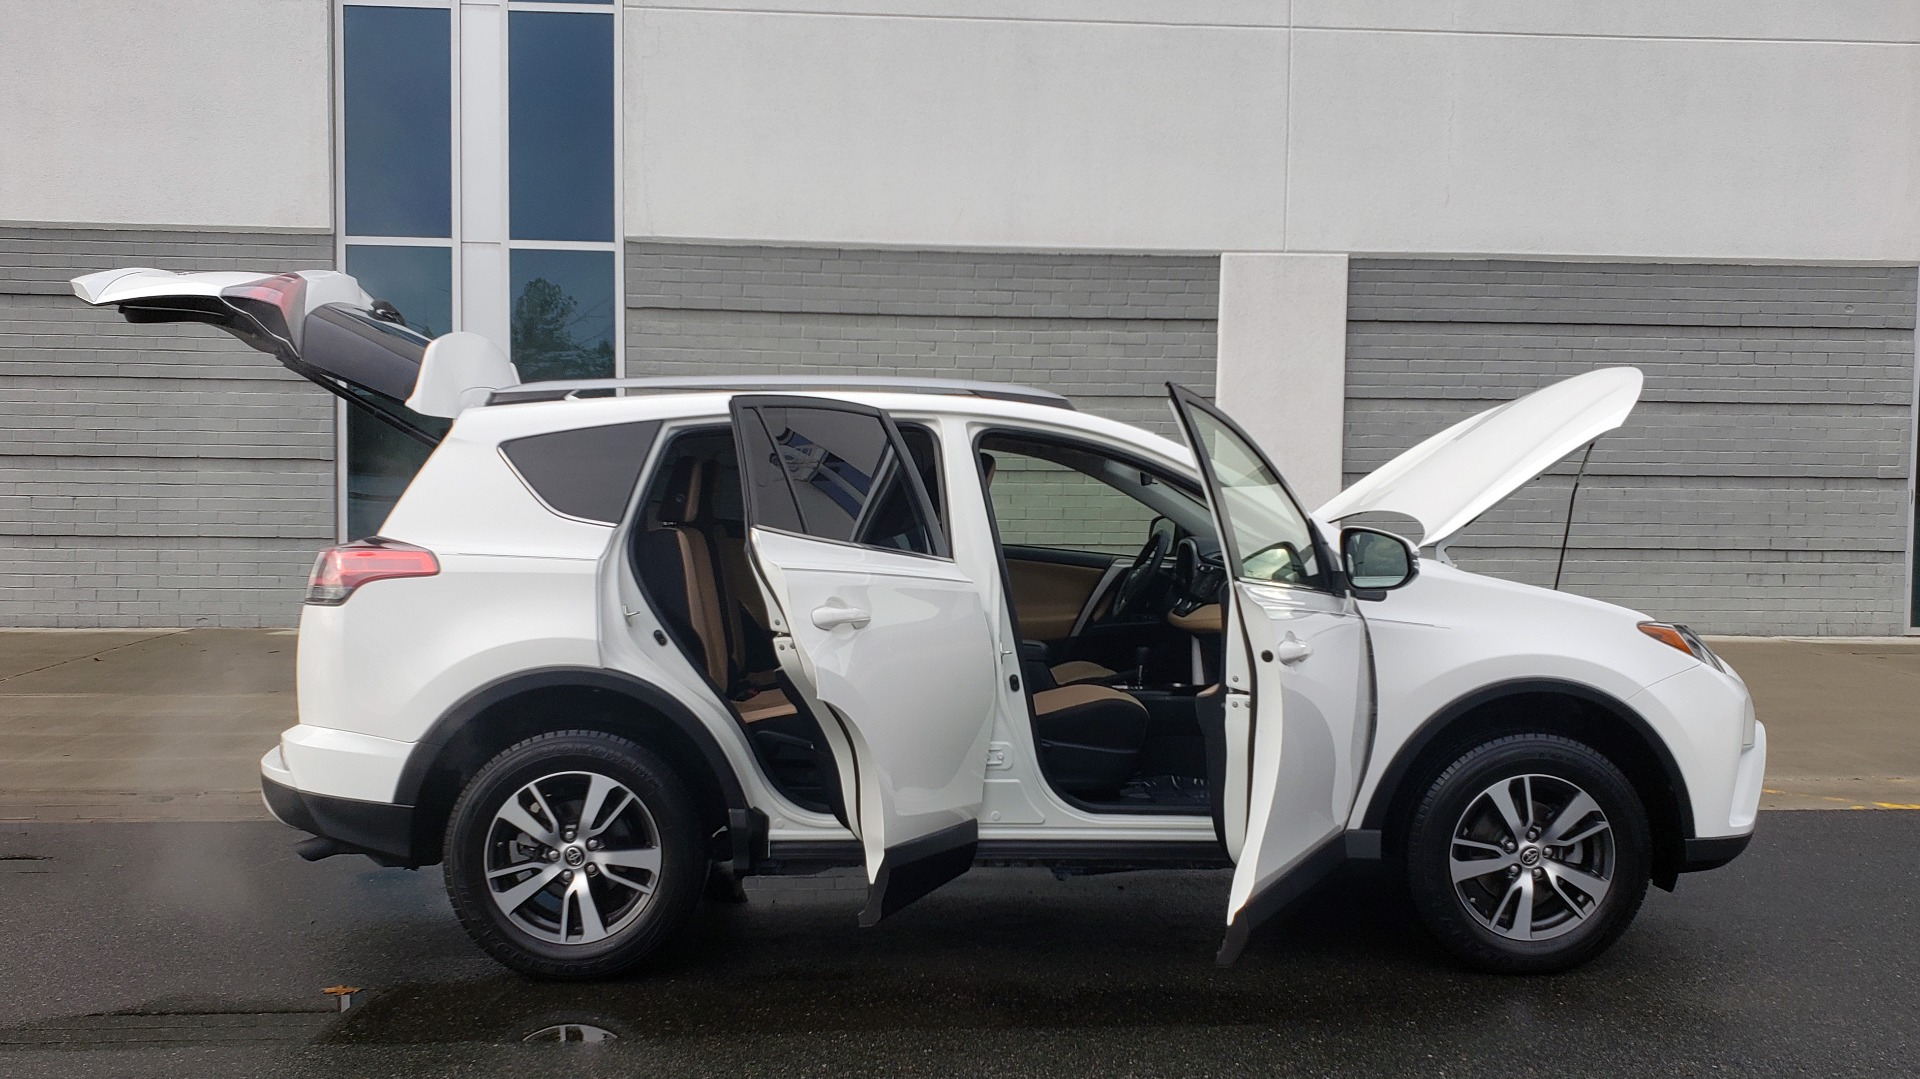 Used 2018 Toyota RAV4 XLE / FWD / 4-CYL / 6-SPD AUTO / BSM / REAR CROSS TRAFFIC ALERT for sale Sold at Formula Imports in Charlotte NC 28227 11